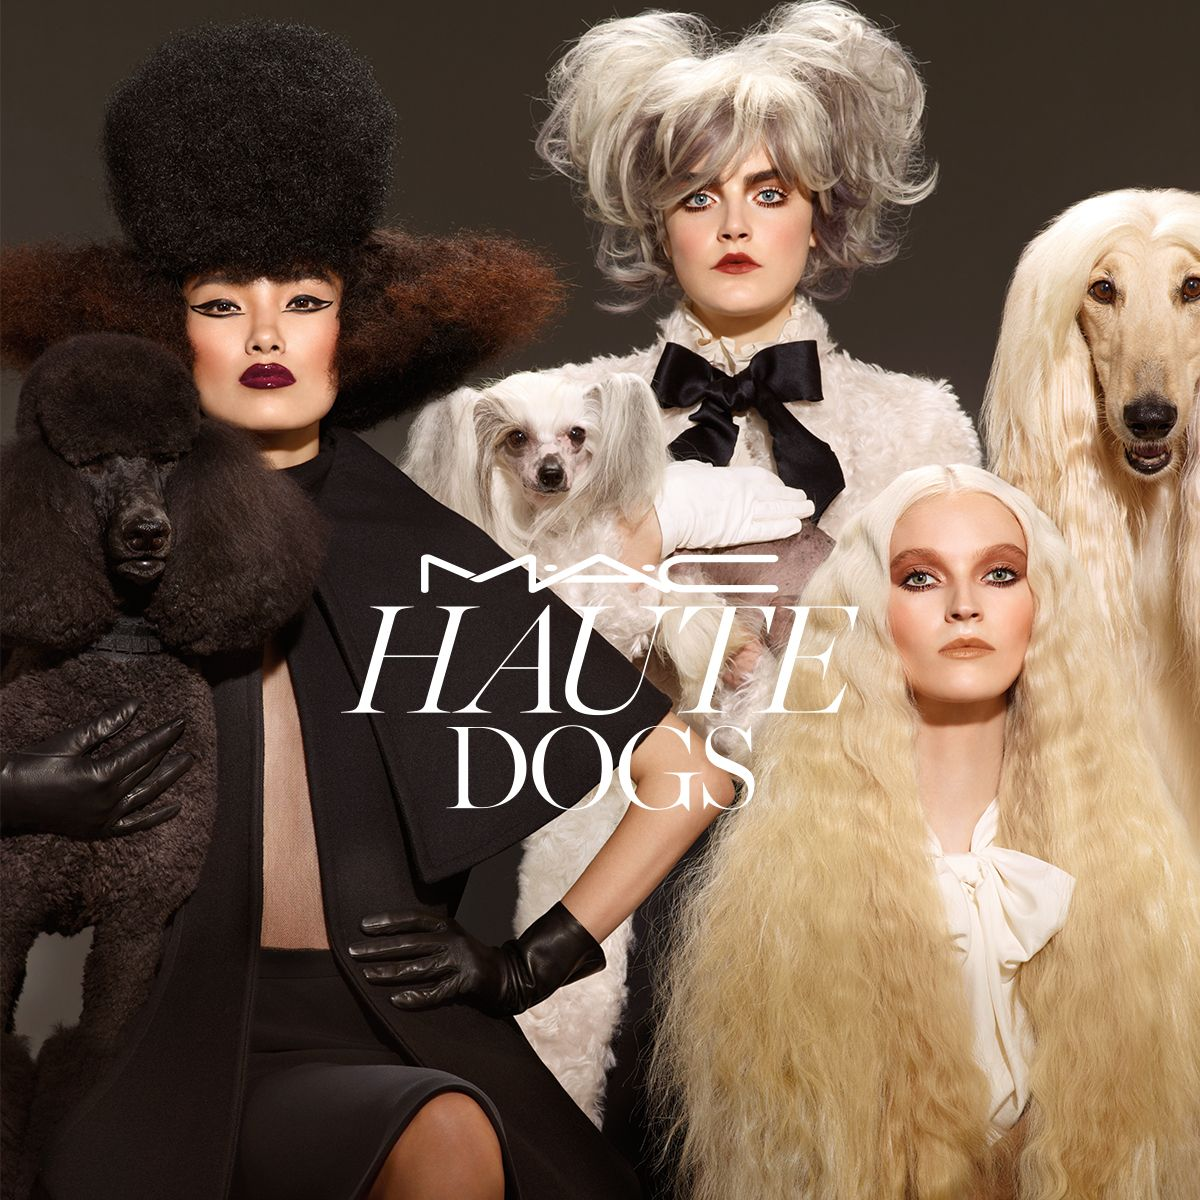 Mac dogs haute fall makeup collection recommend dress for winter in 2019